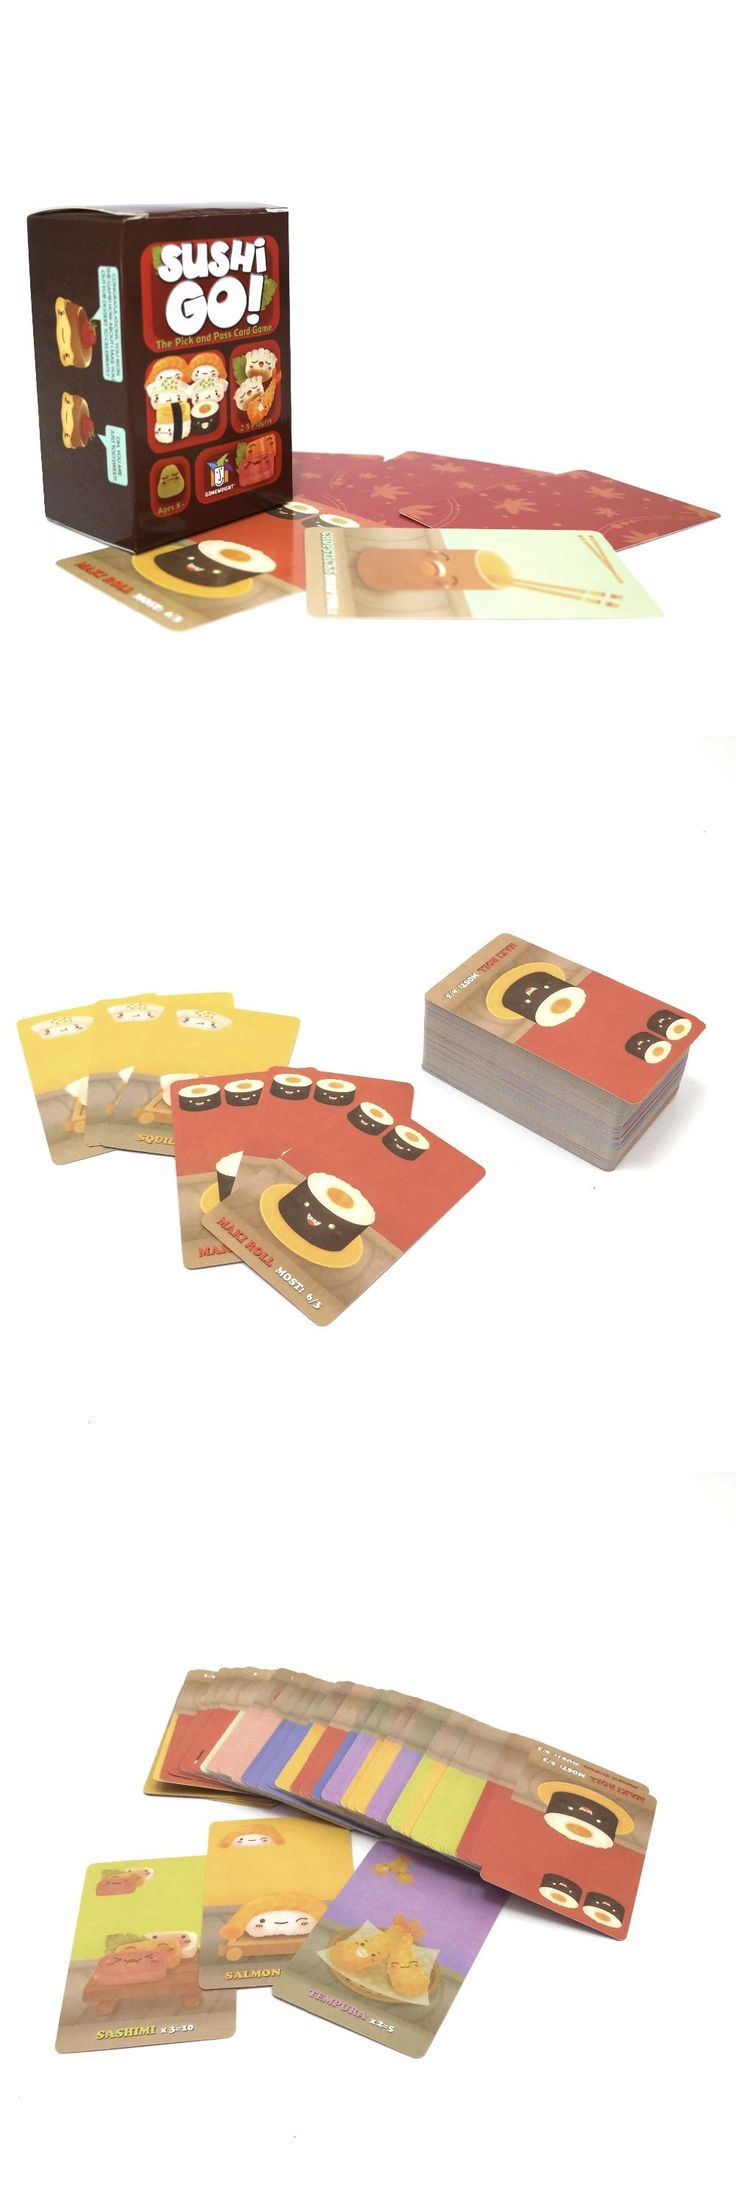 [Visit to Buy] 2017 new Full English version sushi go cards game easy carry version for party family kids board game #Advertisement